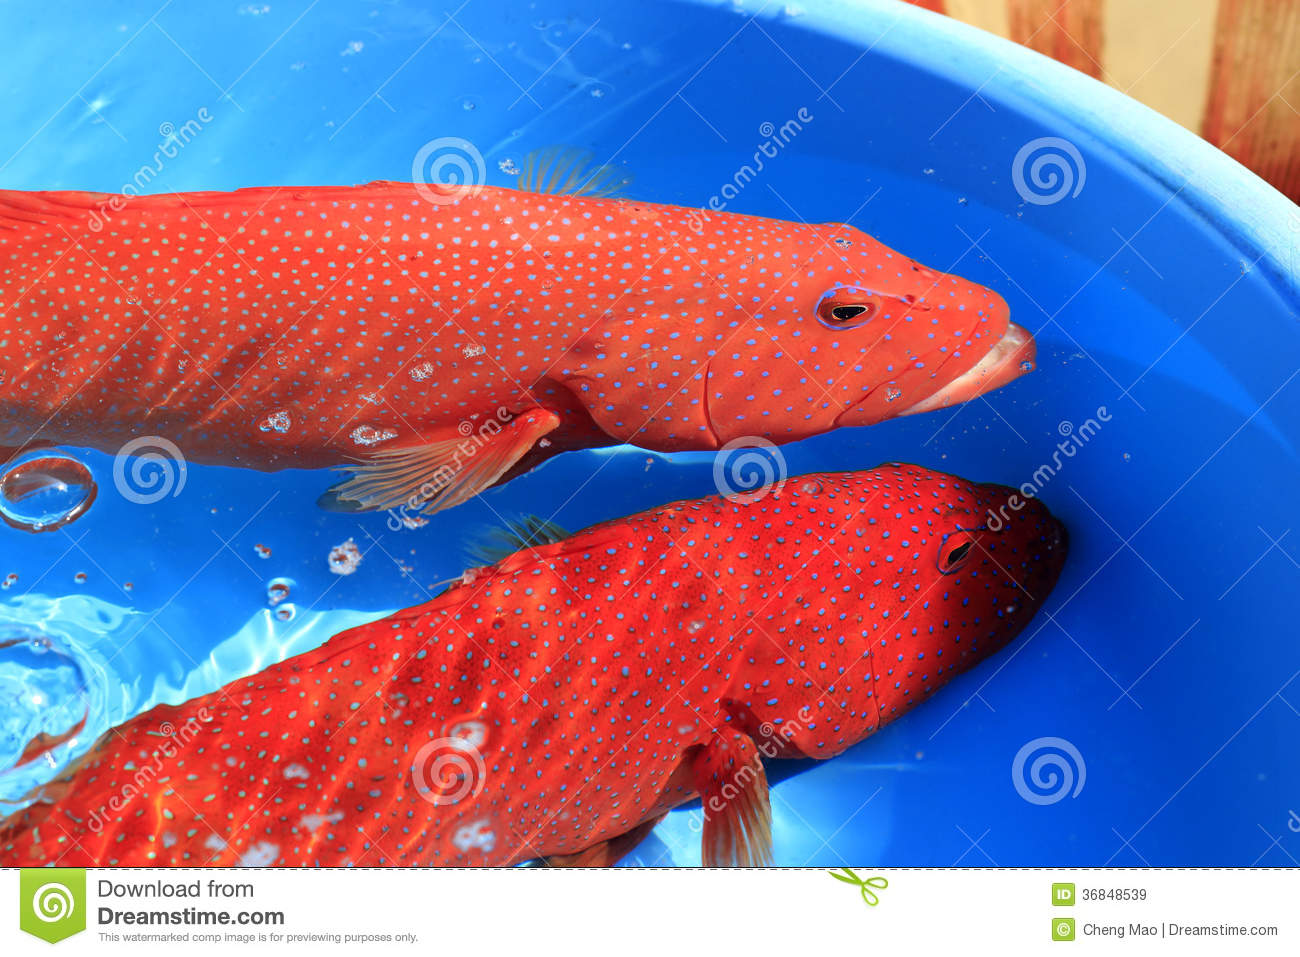 Red grouper in the water, in the market, amoy city, china.